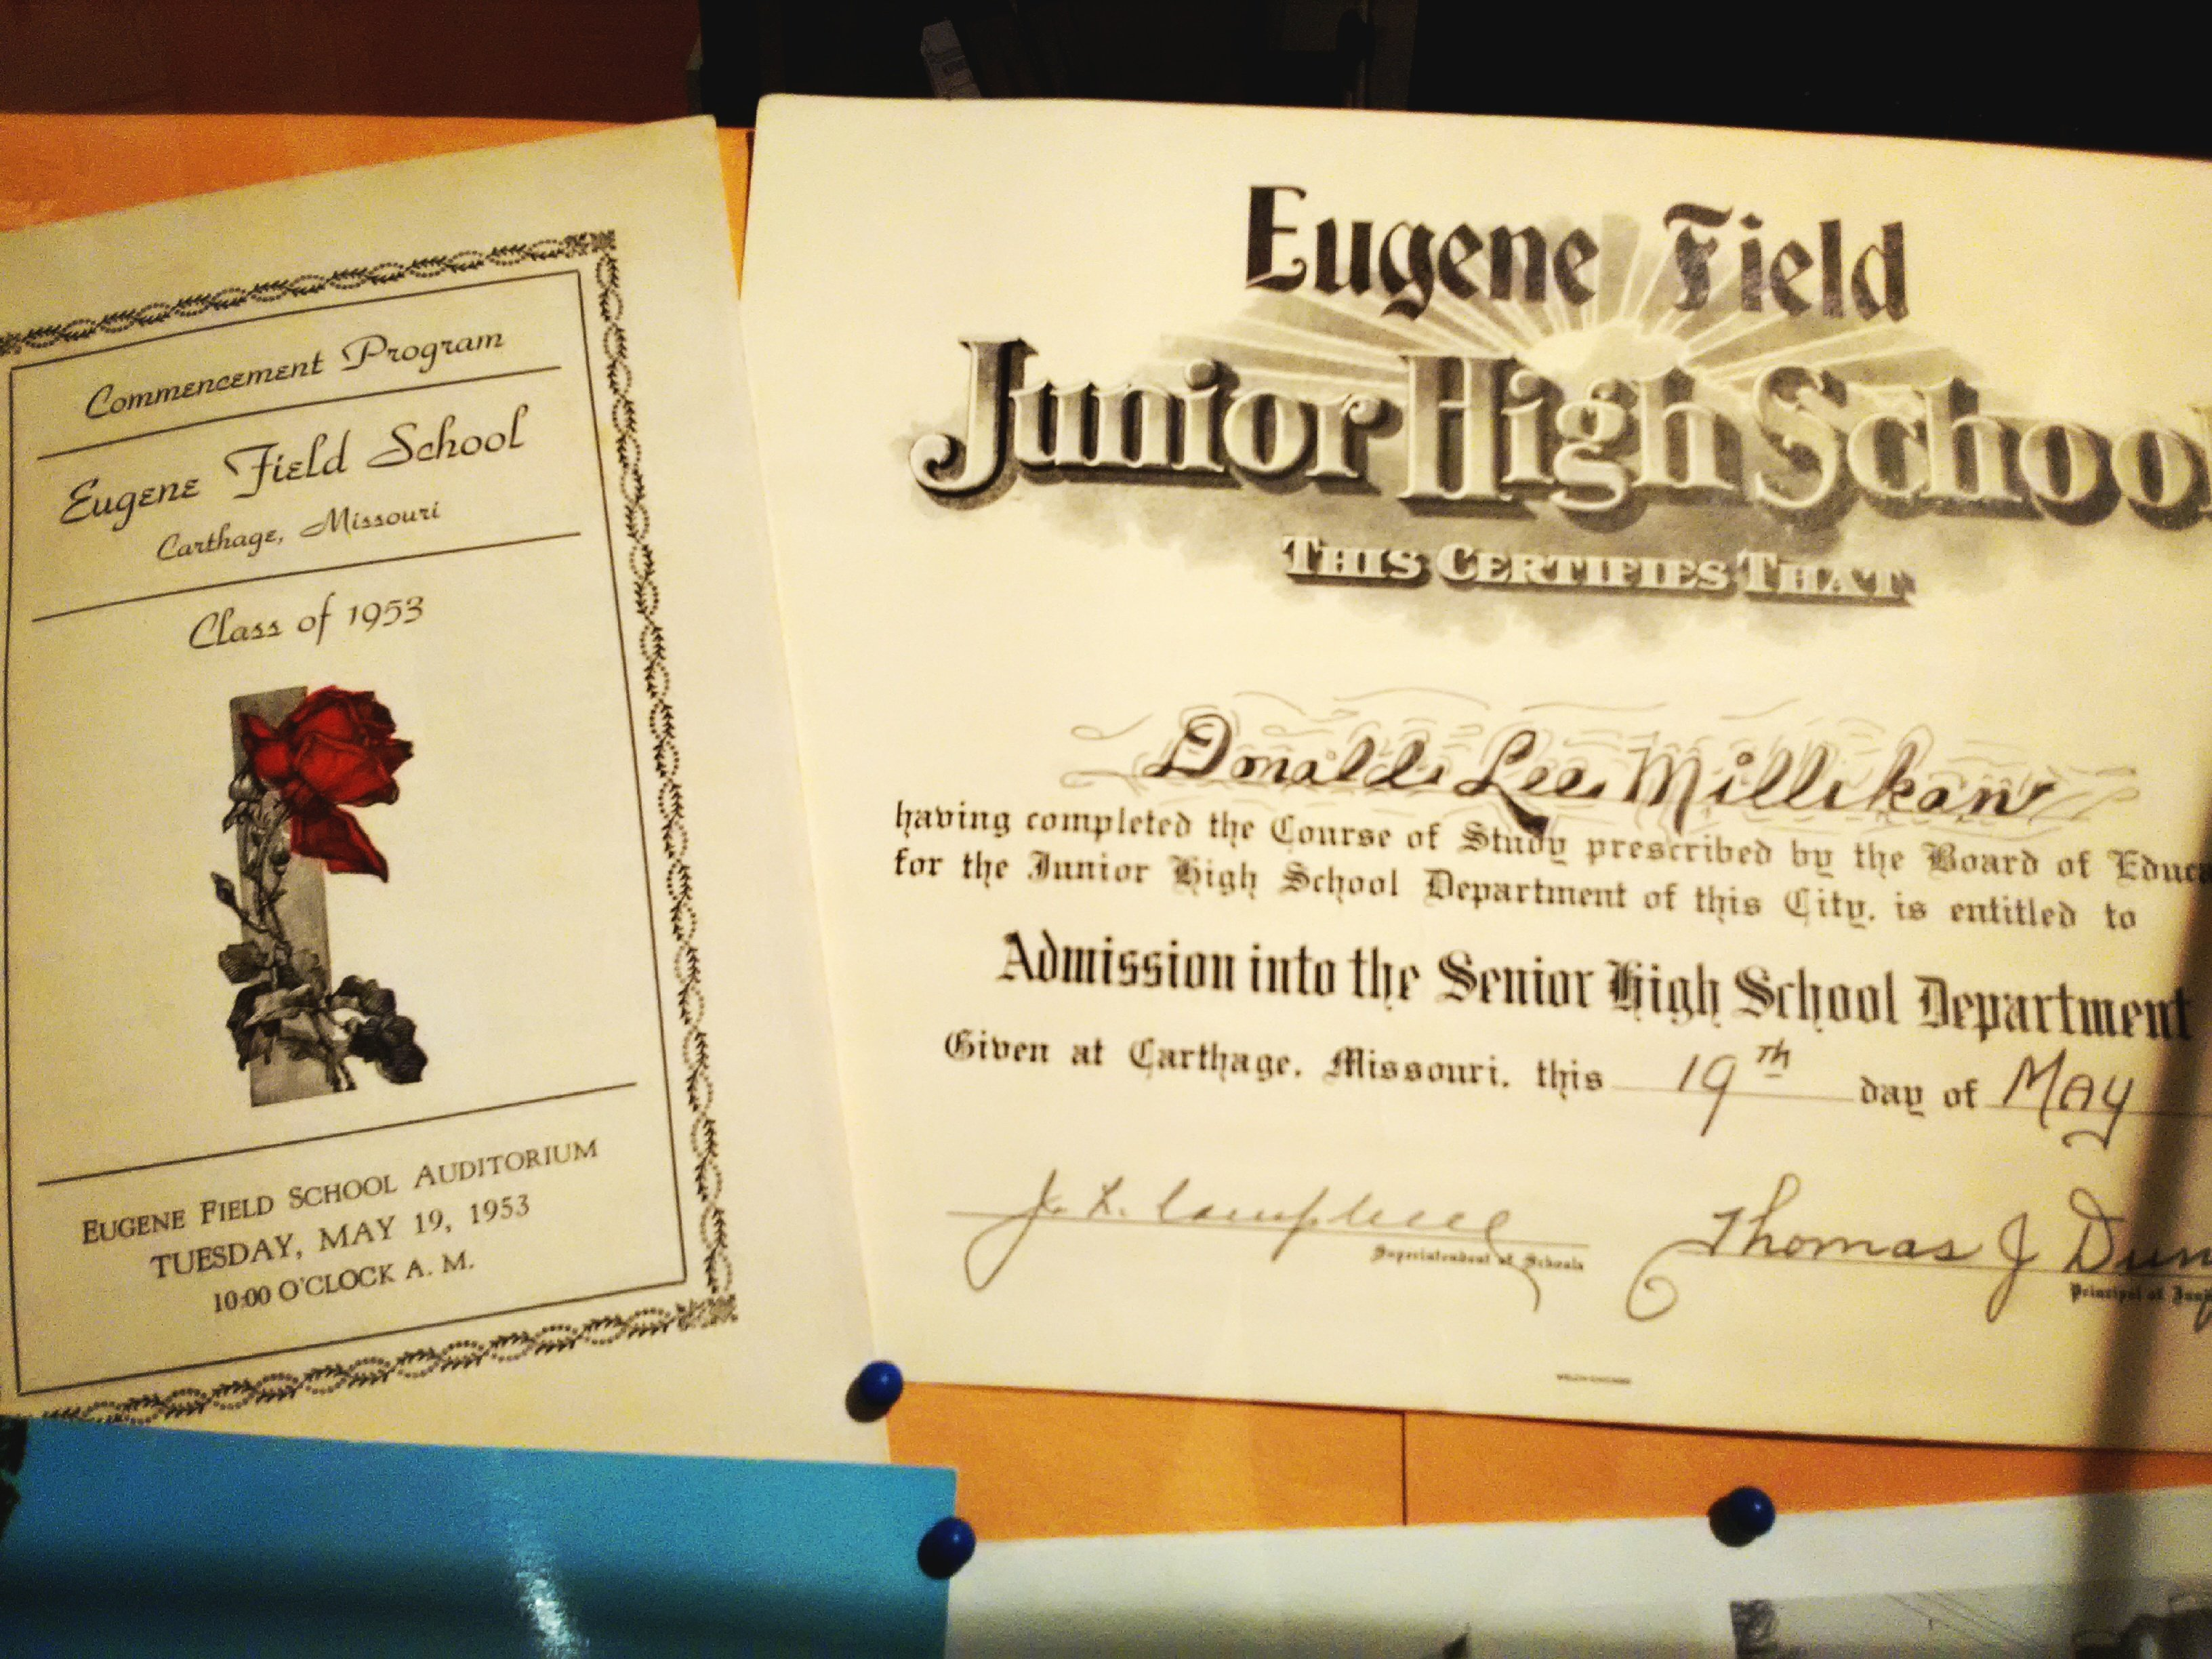 1953 program and graduation certificate for Donald Lee Millikan from Eugene Field School display in 175th Anniversary of Carthage at the Powers Museum in 2017.